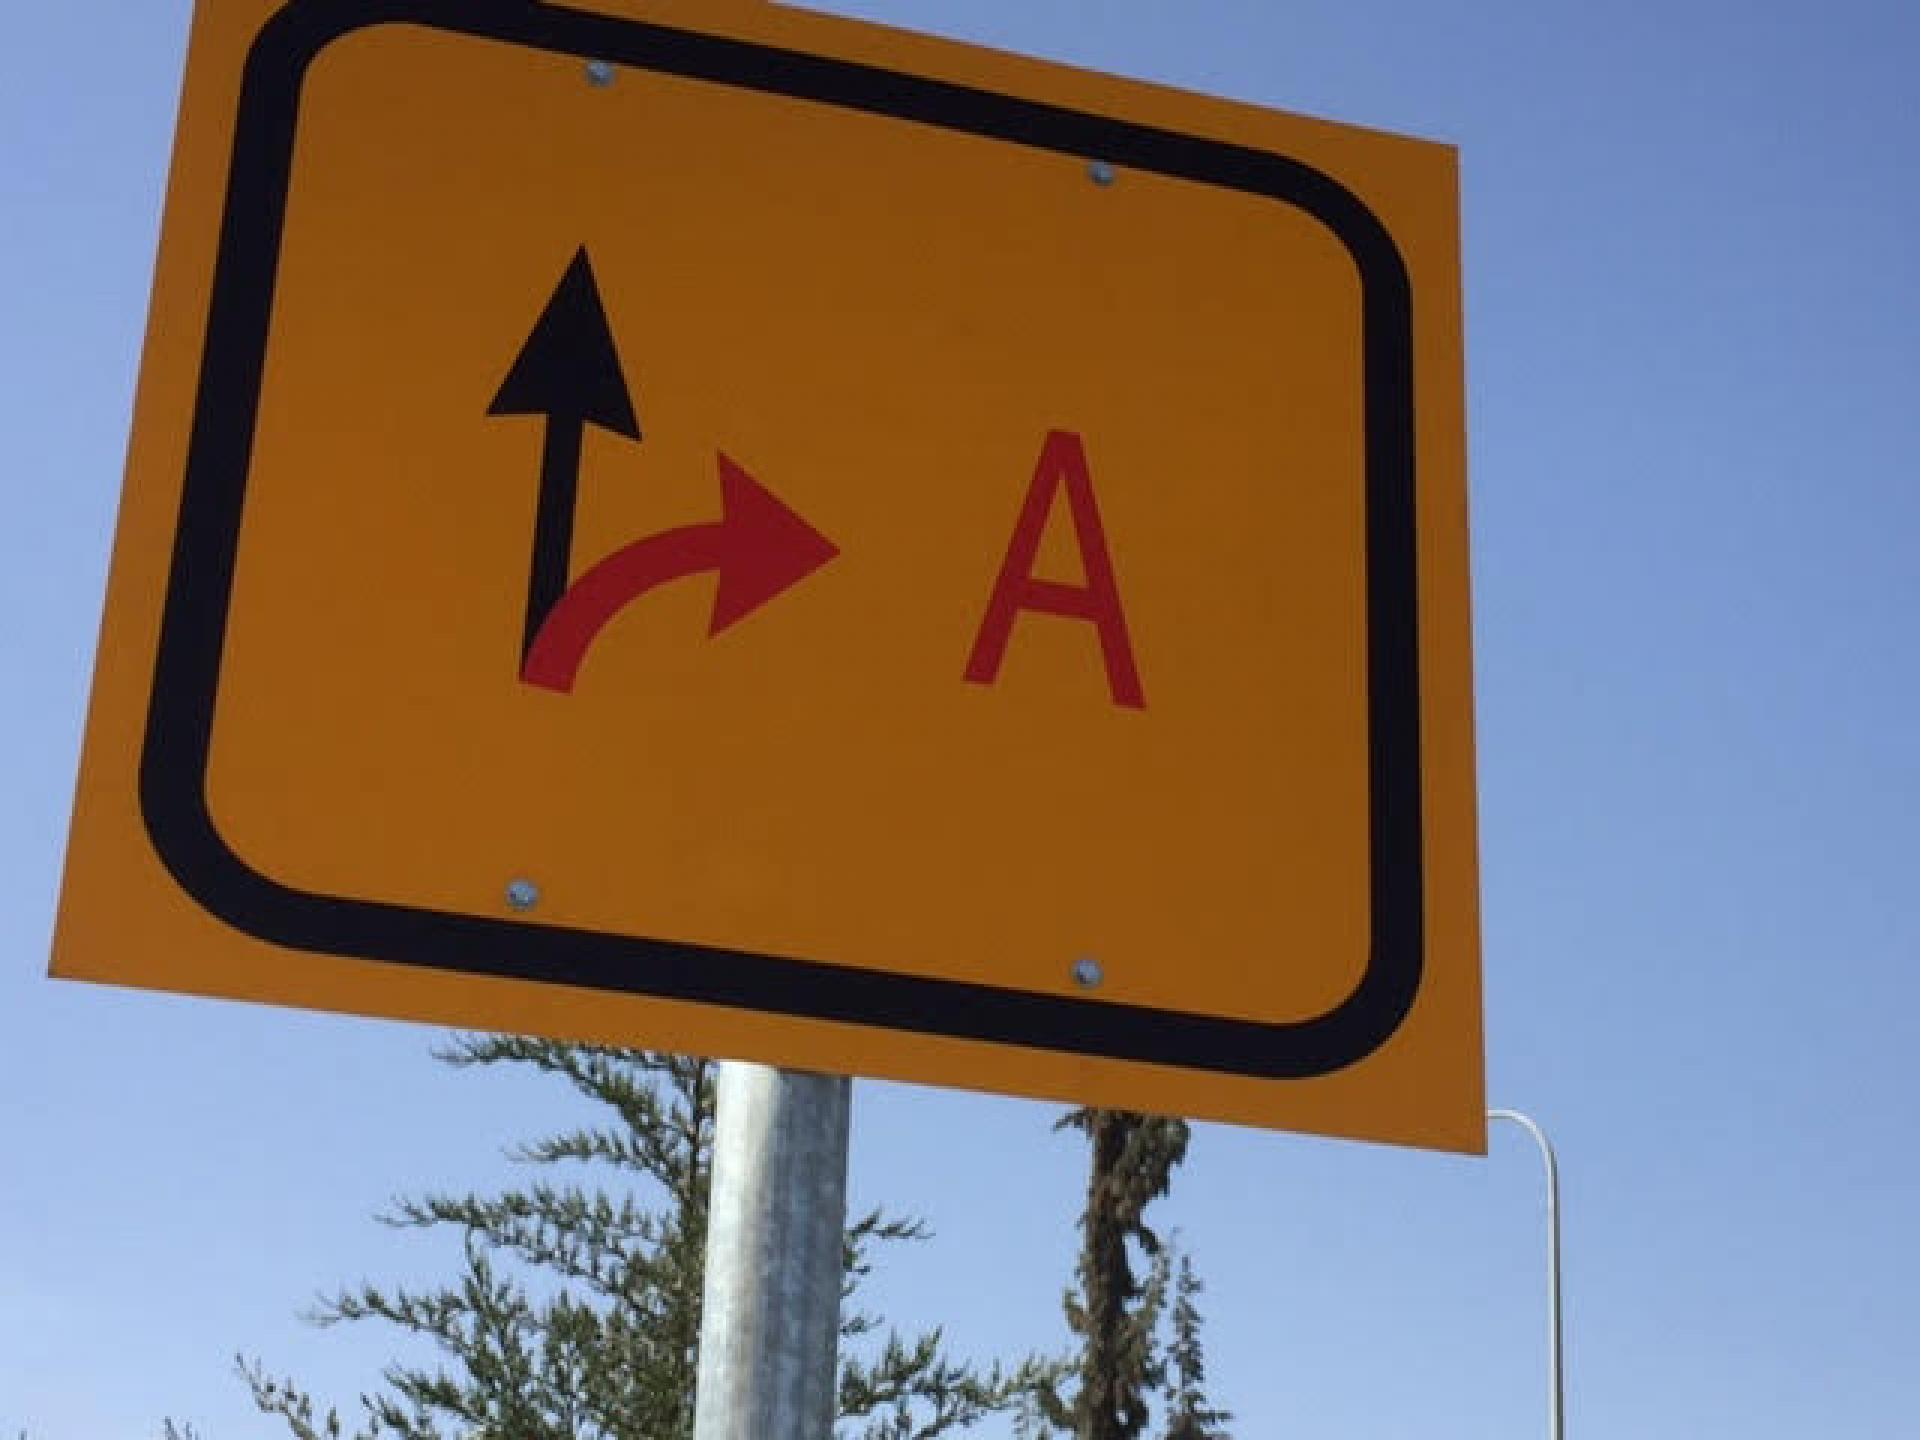 On Route 60 before entering Dhahariya, four signs have been erected to to warn Israelis not to enter Area A